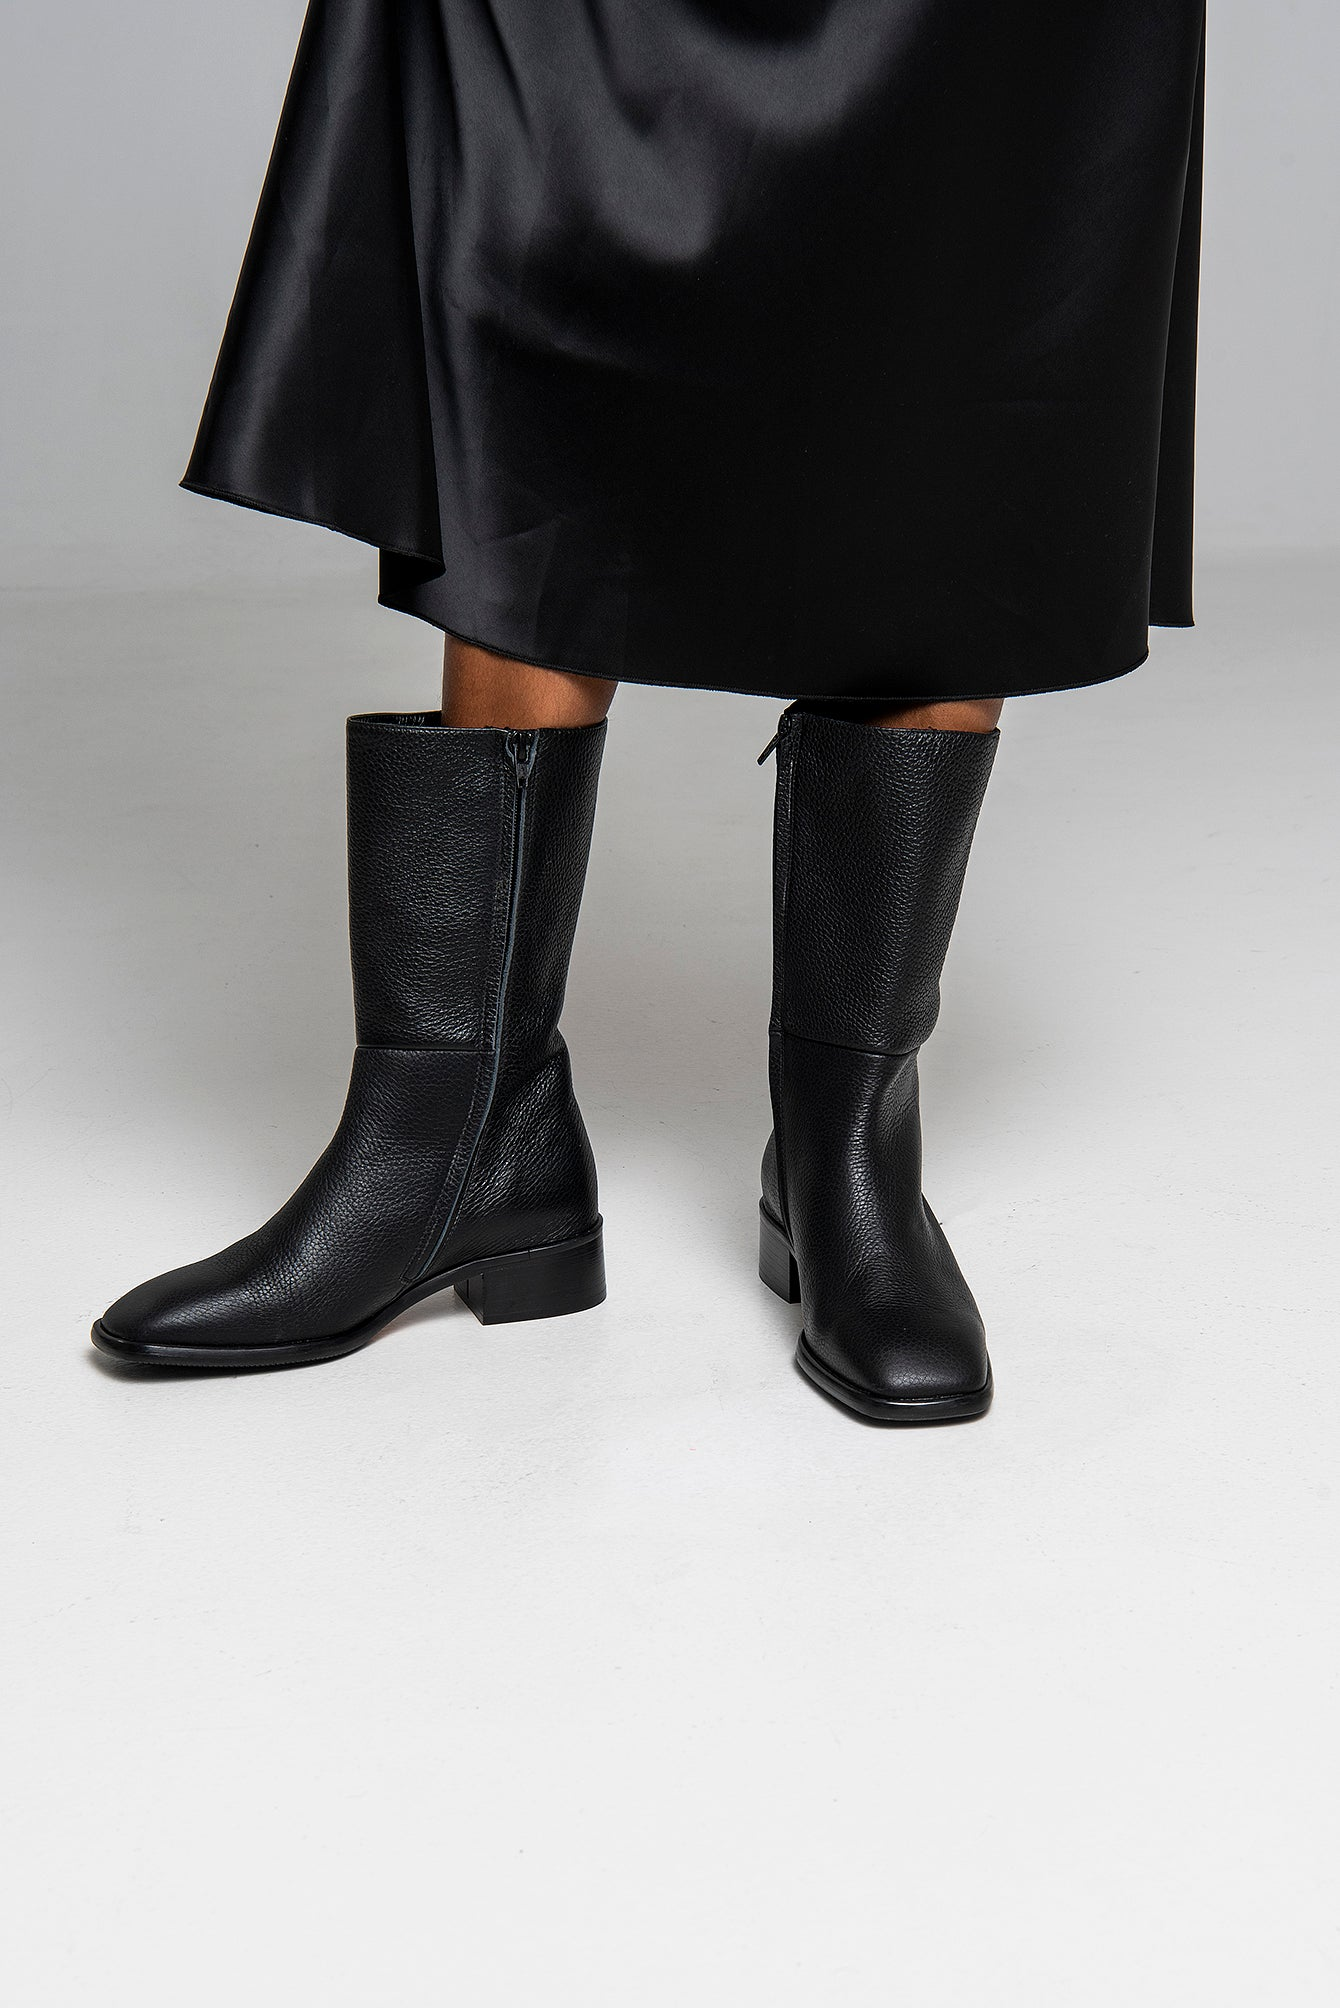 Joanna Black Mid High Boots